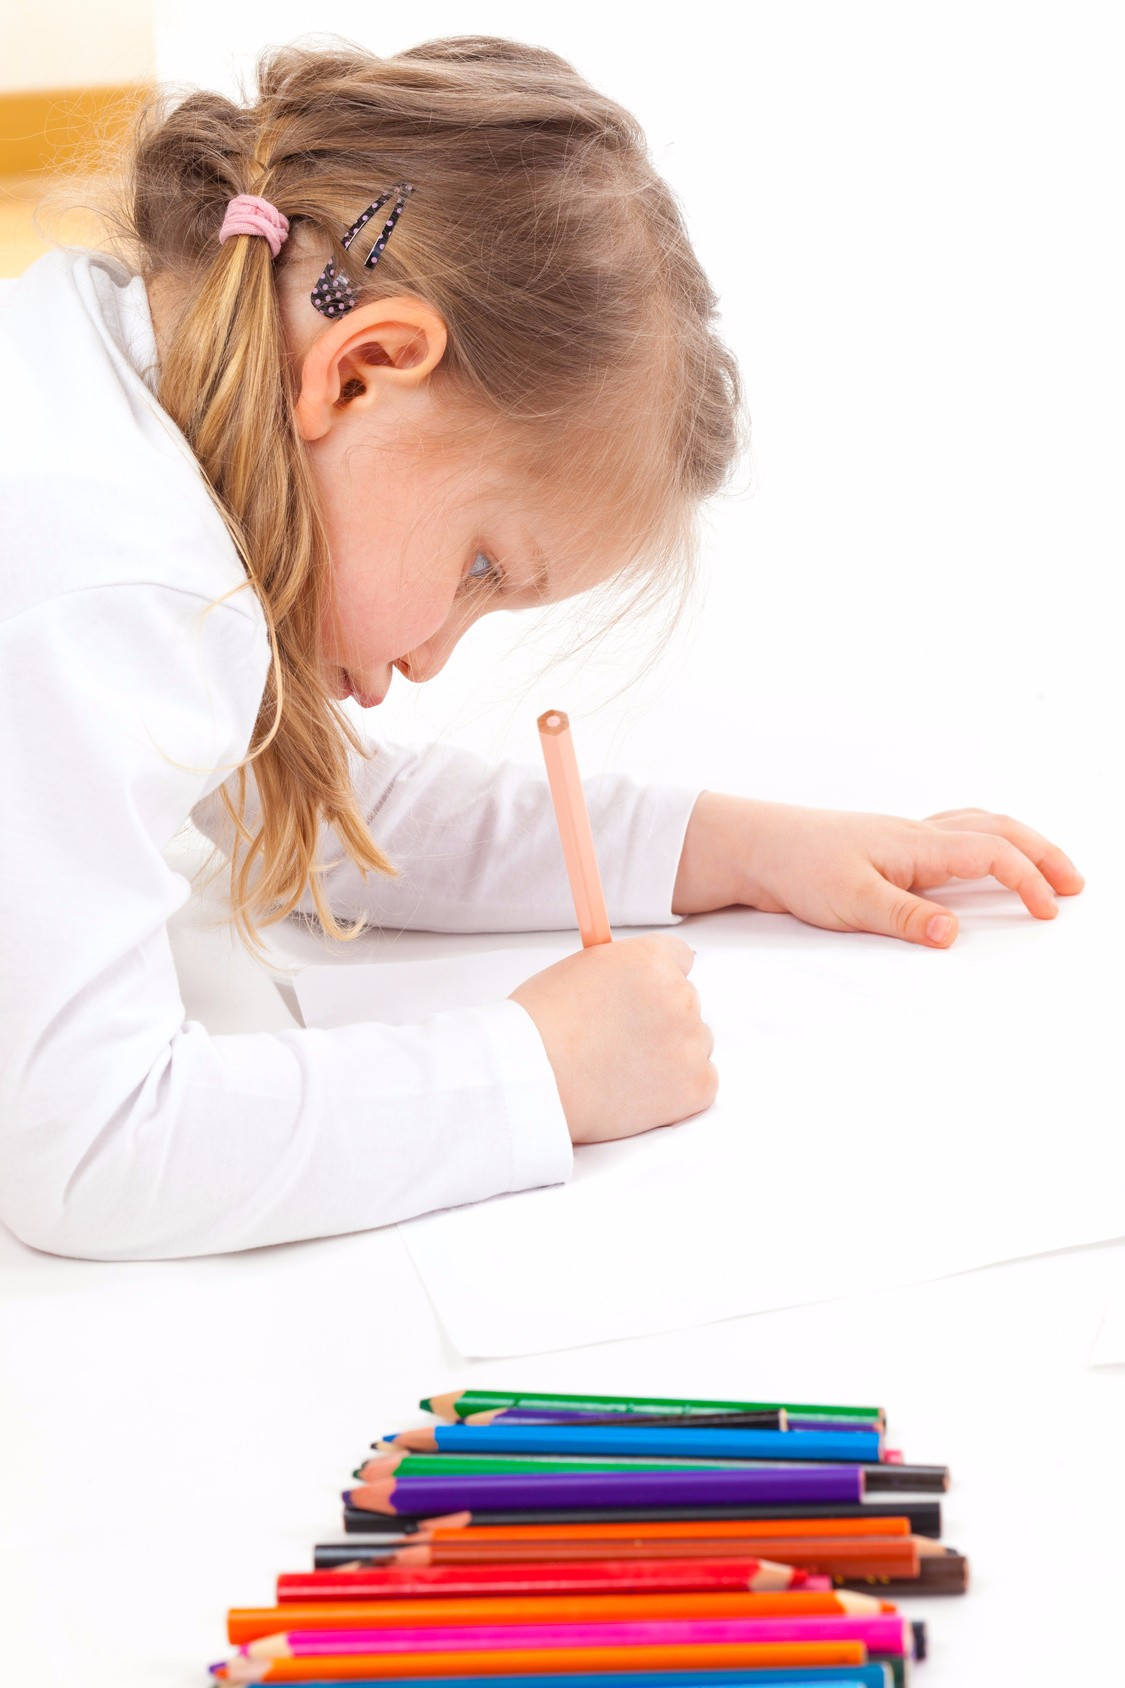 Girl starting to draw a picture with coloring pencils